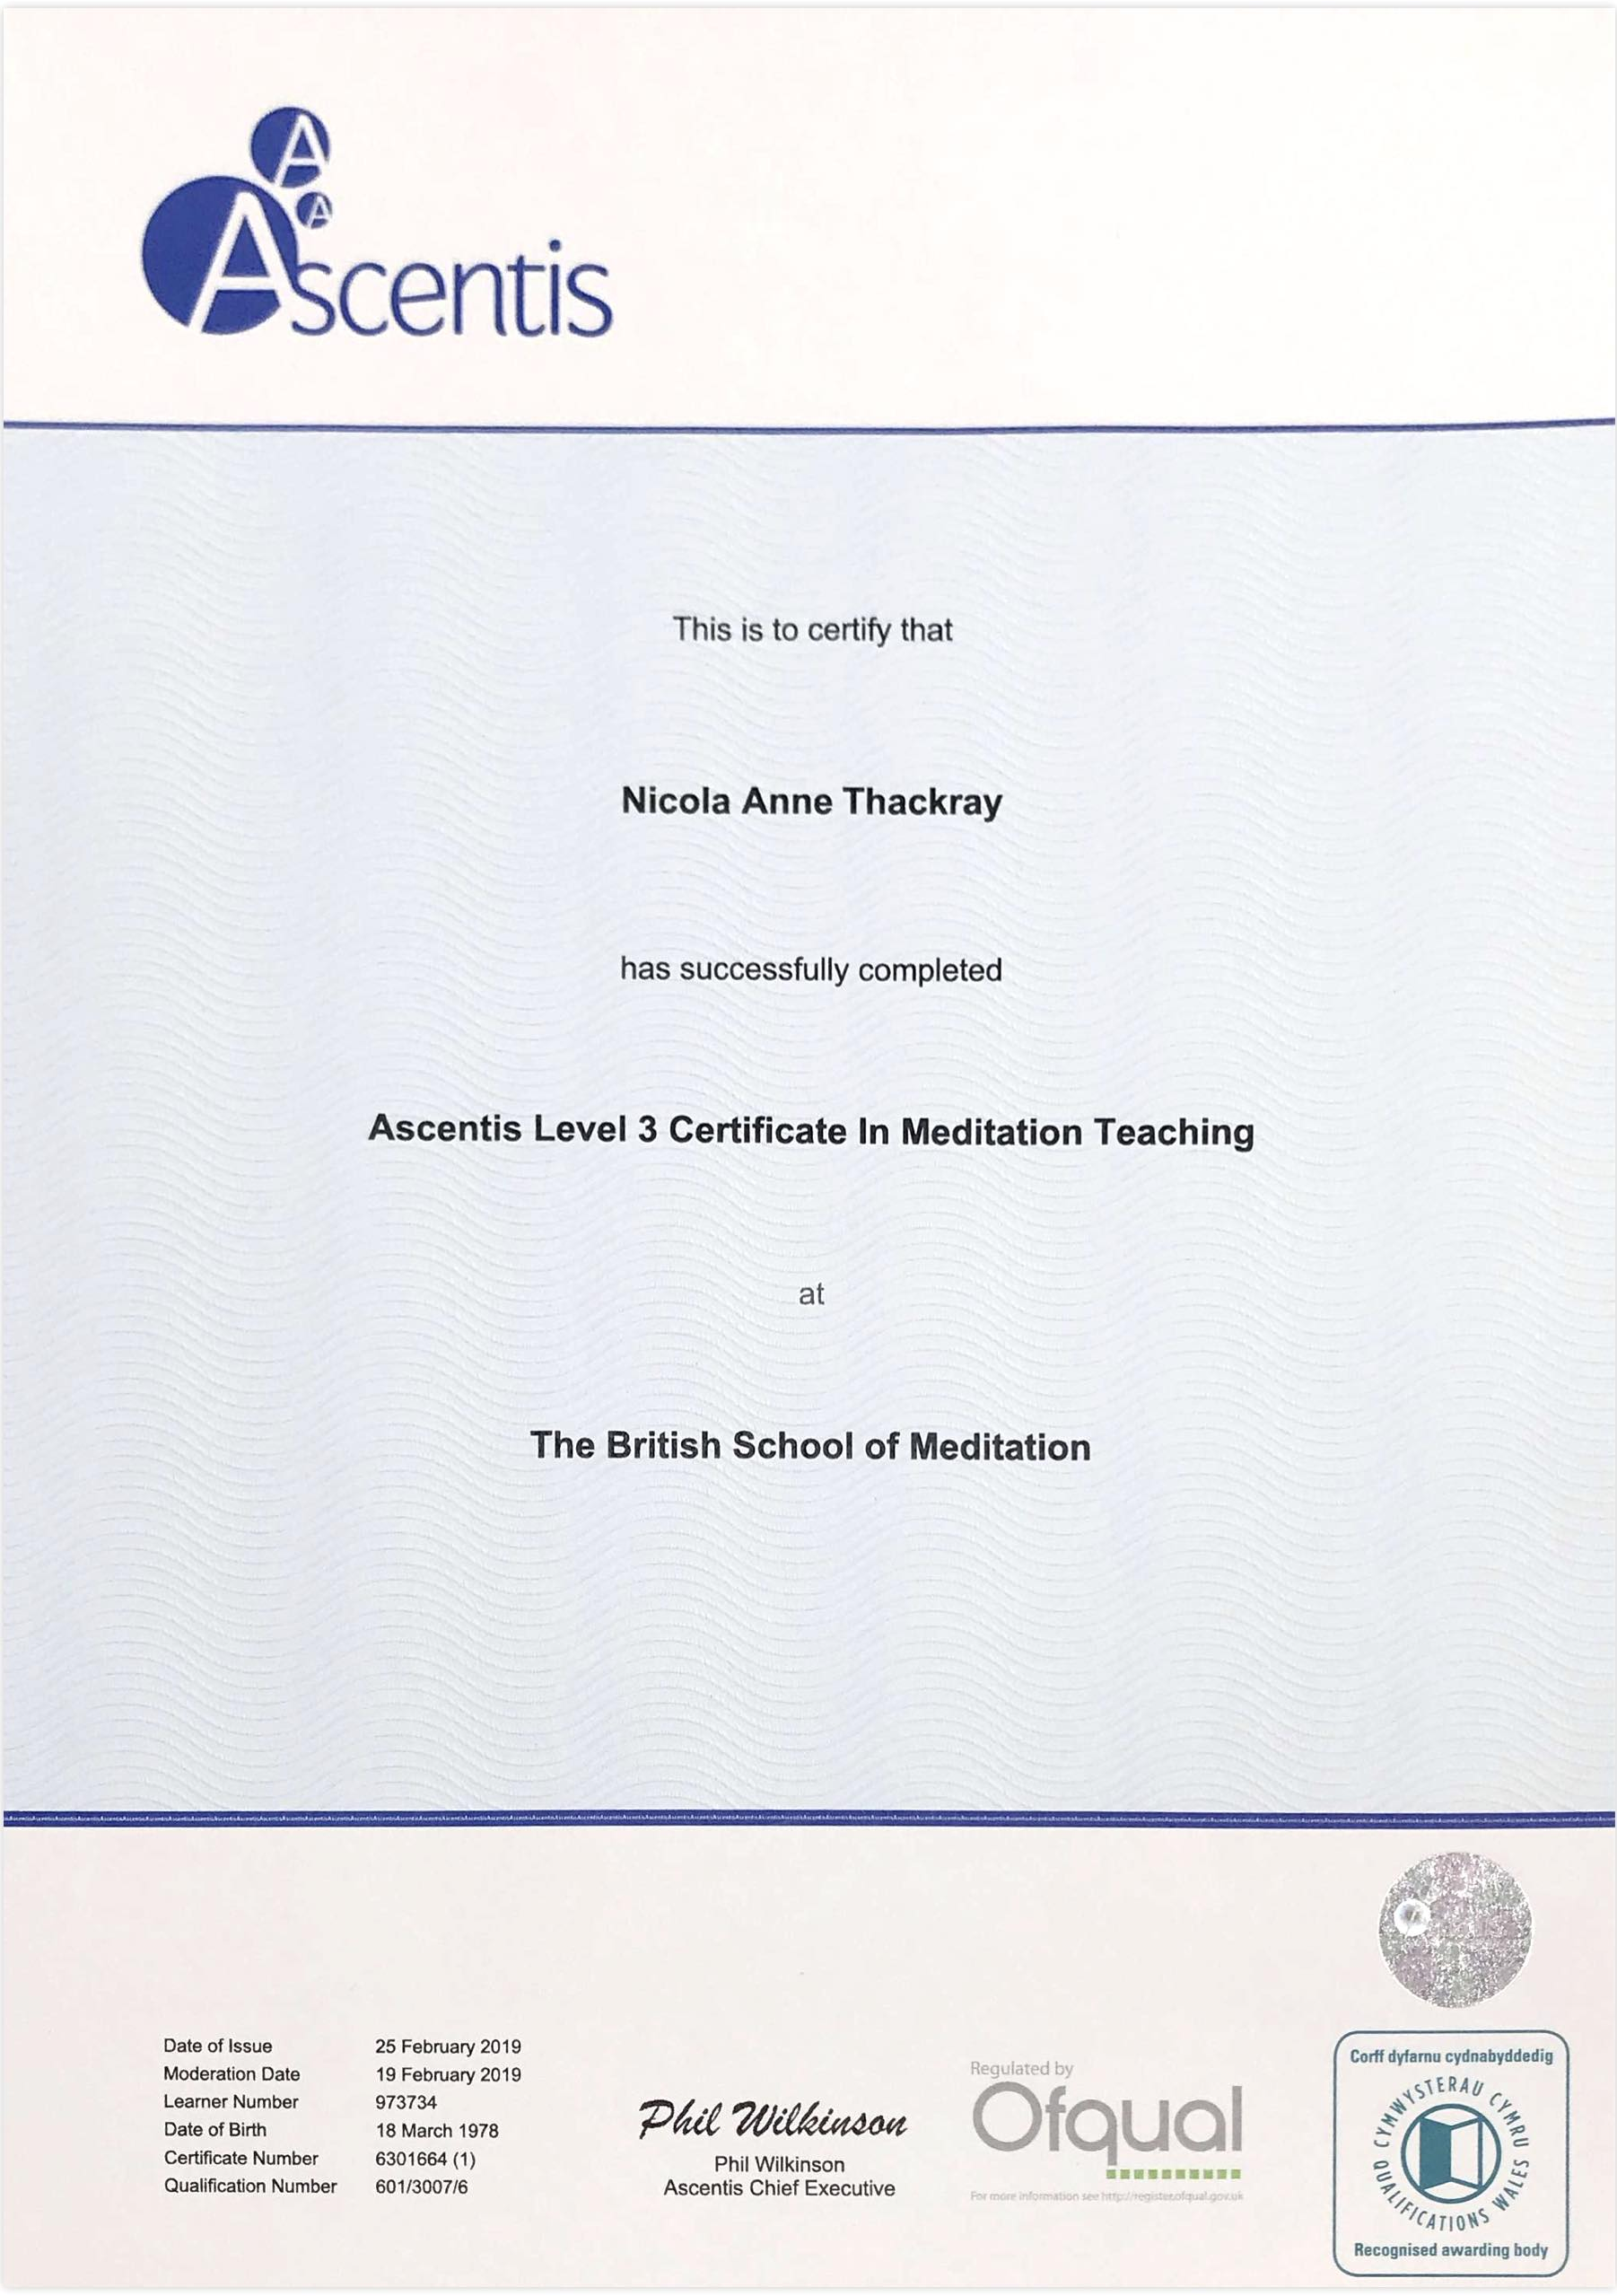 Nicky's Certificate, from the examination body